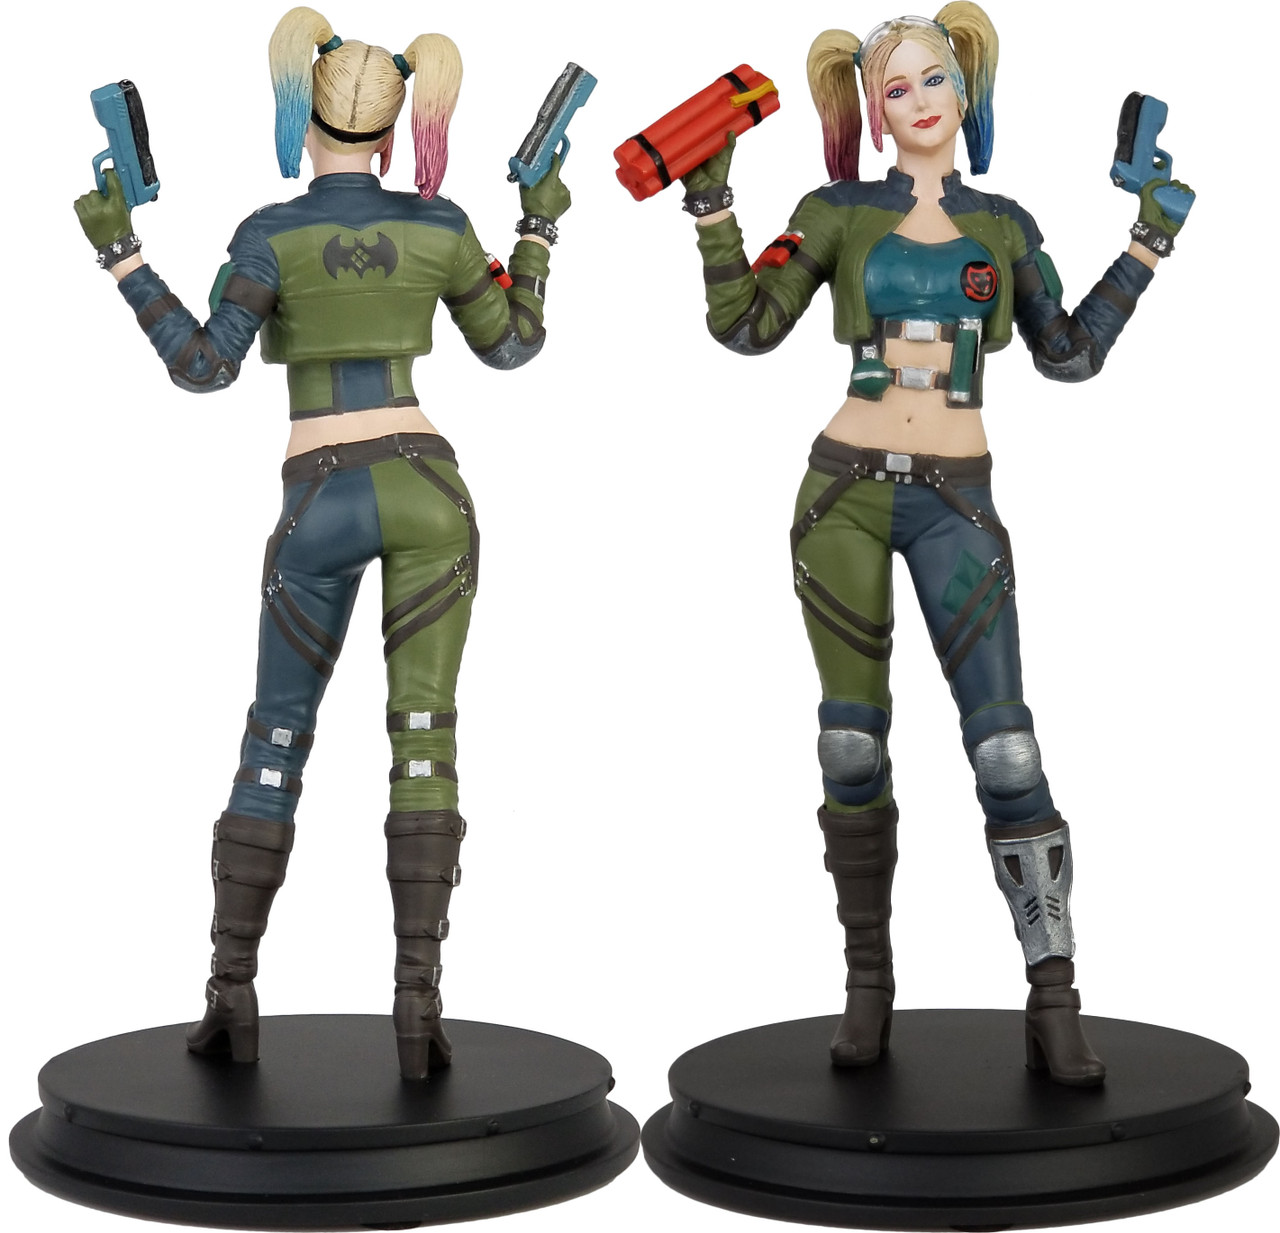 DC Injustice ~ Harley Quinn (Green Jacket) Statue PX Exclusive 1 of 500